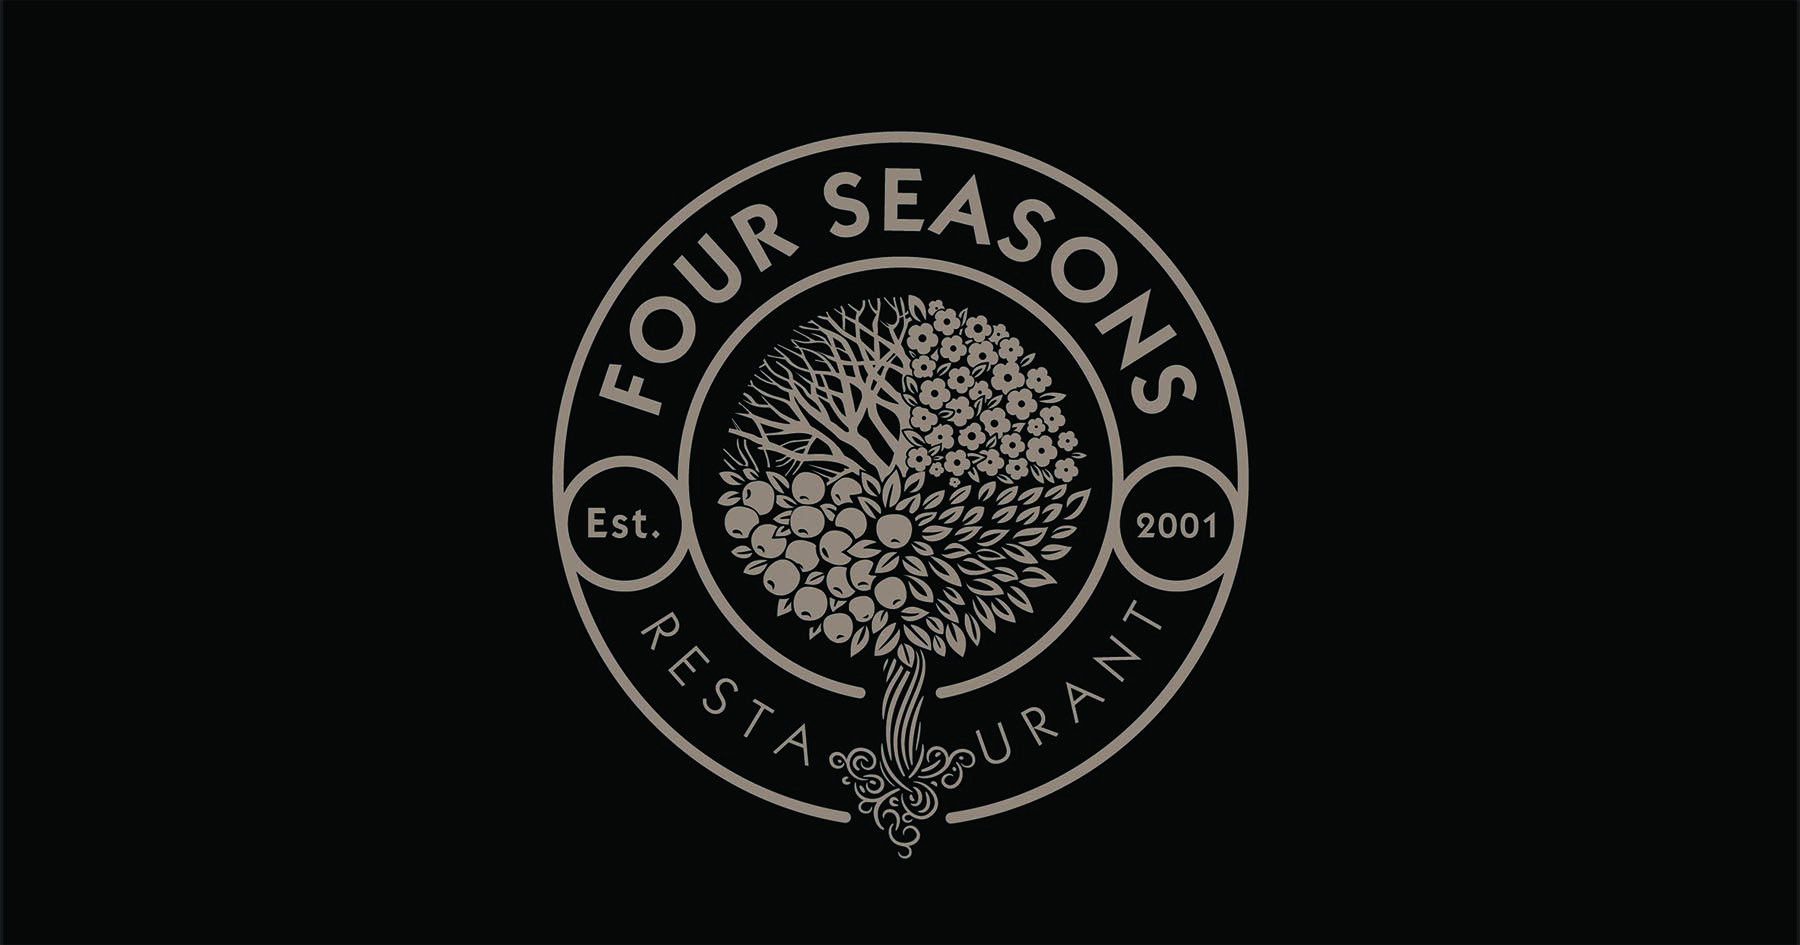 four seasons restaurant logo